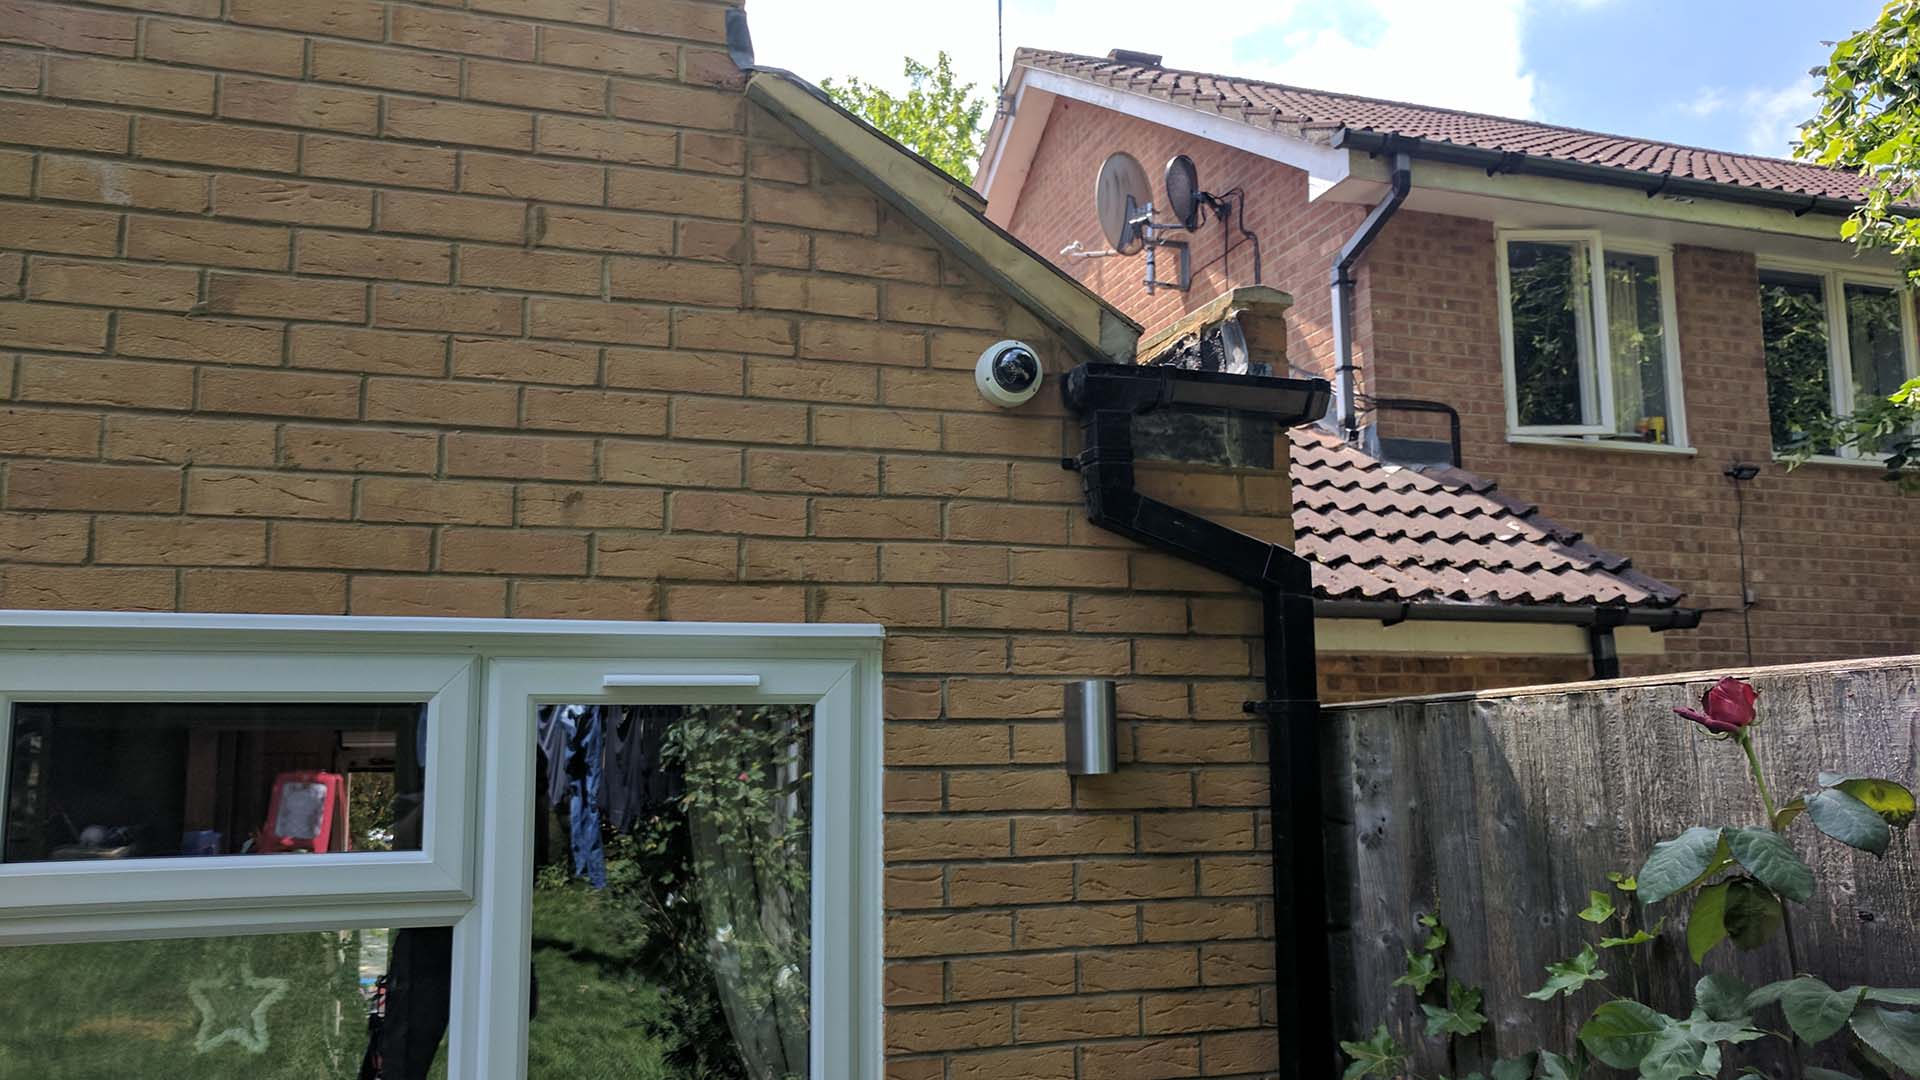 CCTV Installation in Brentwood